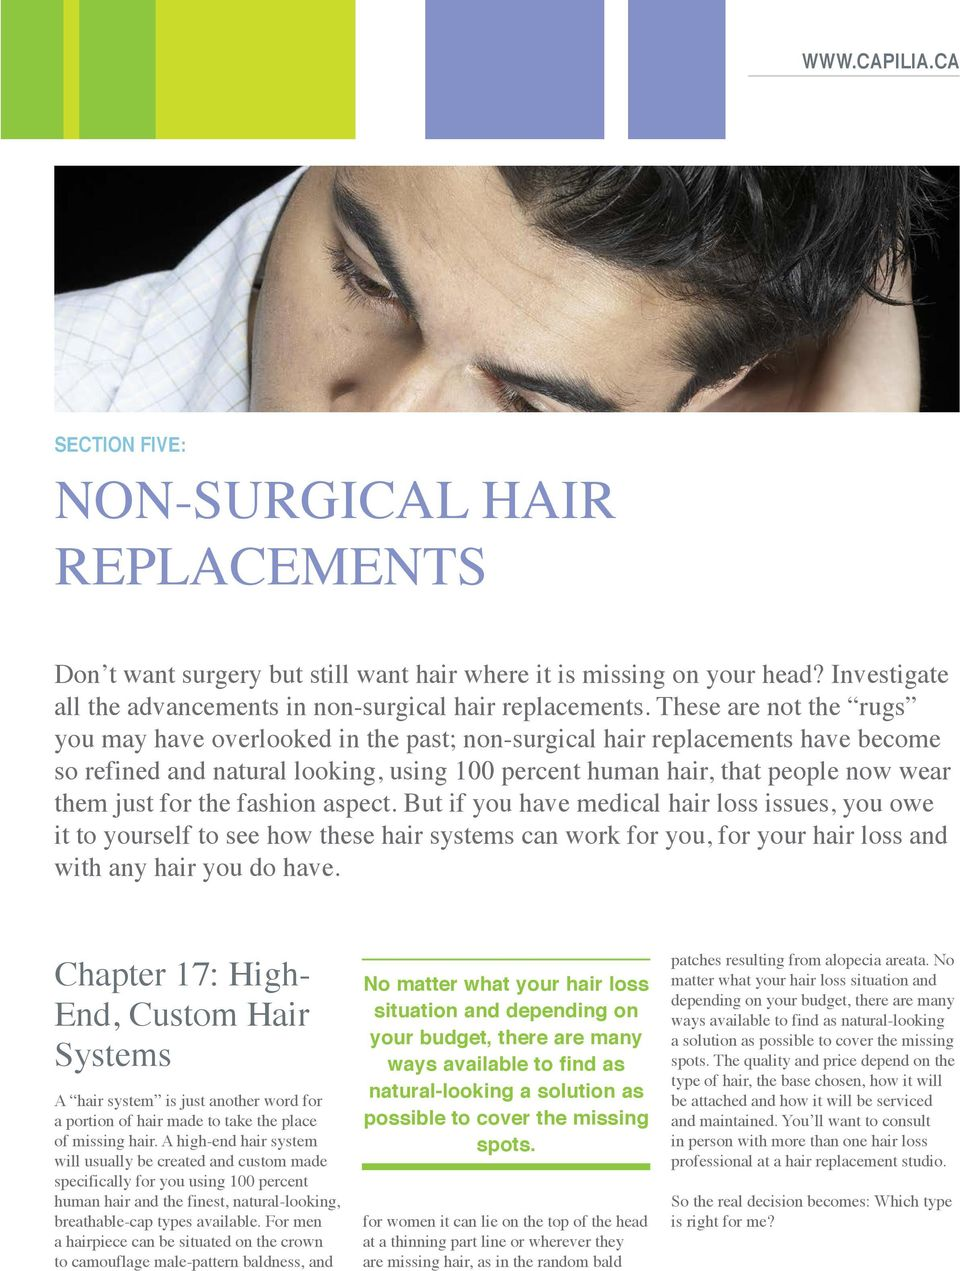 the fashion aspect. But if you have medical hair loss issues, you owe it to yourself to see how these hair systems can work for you, for your hair loss and with any hair you do have.